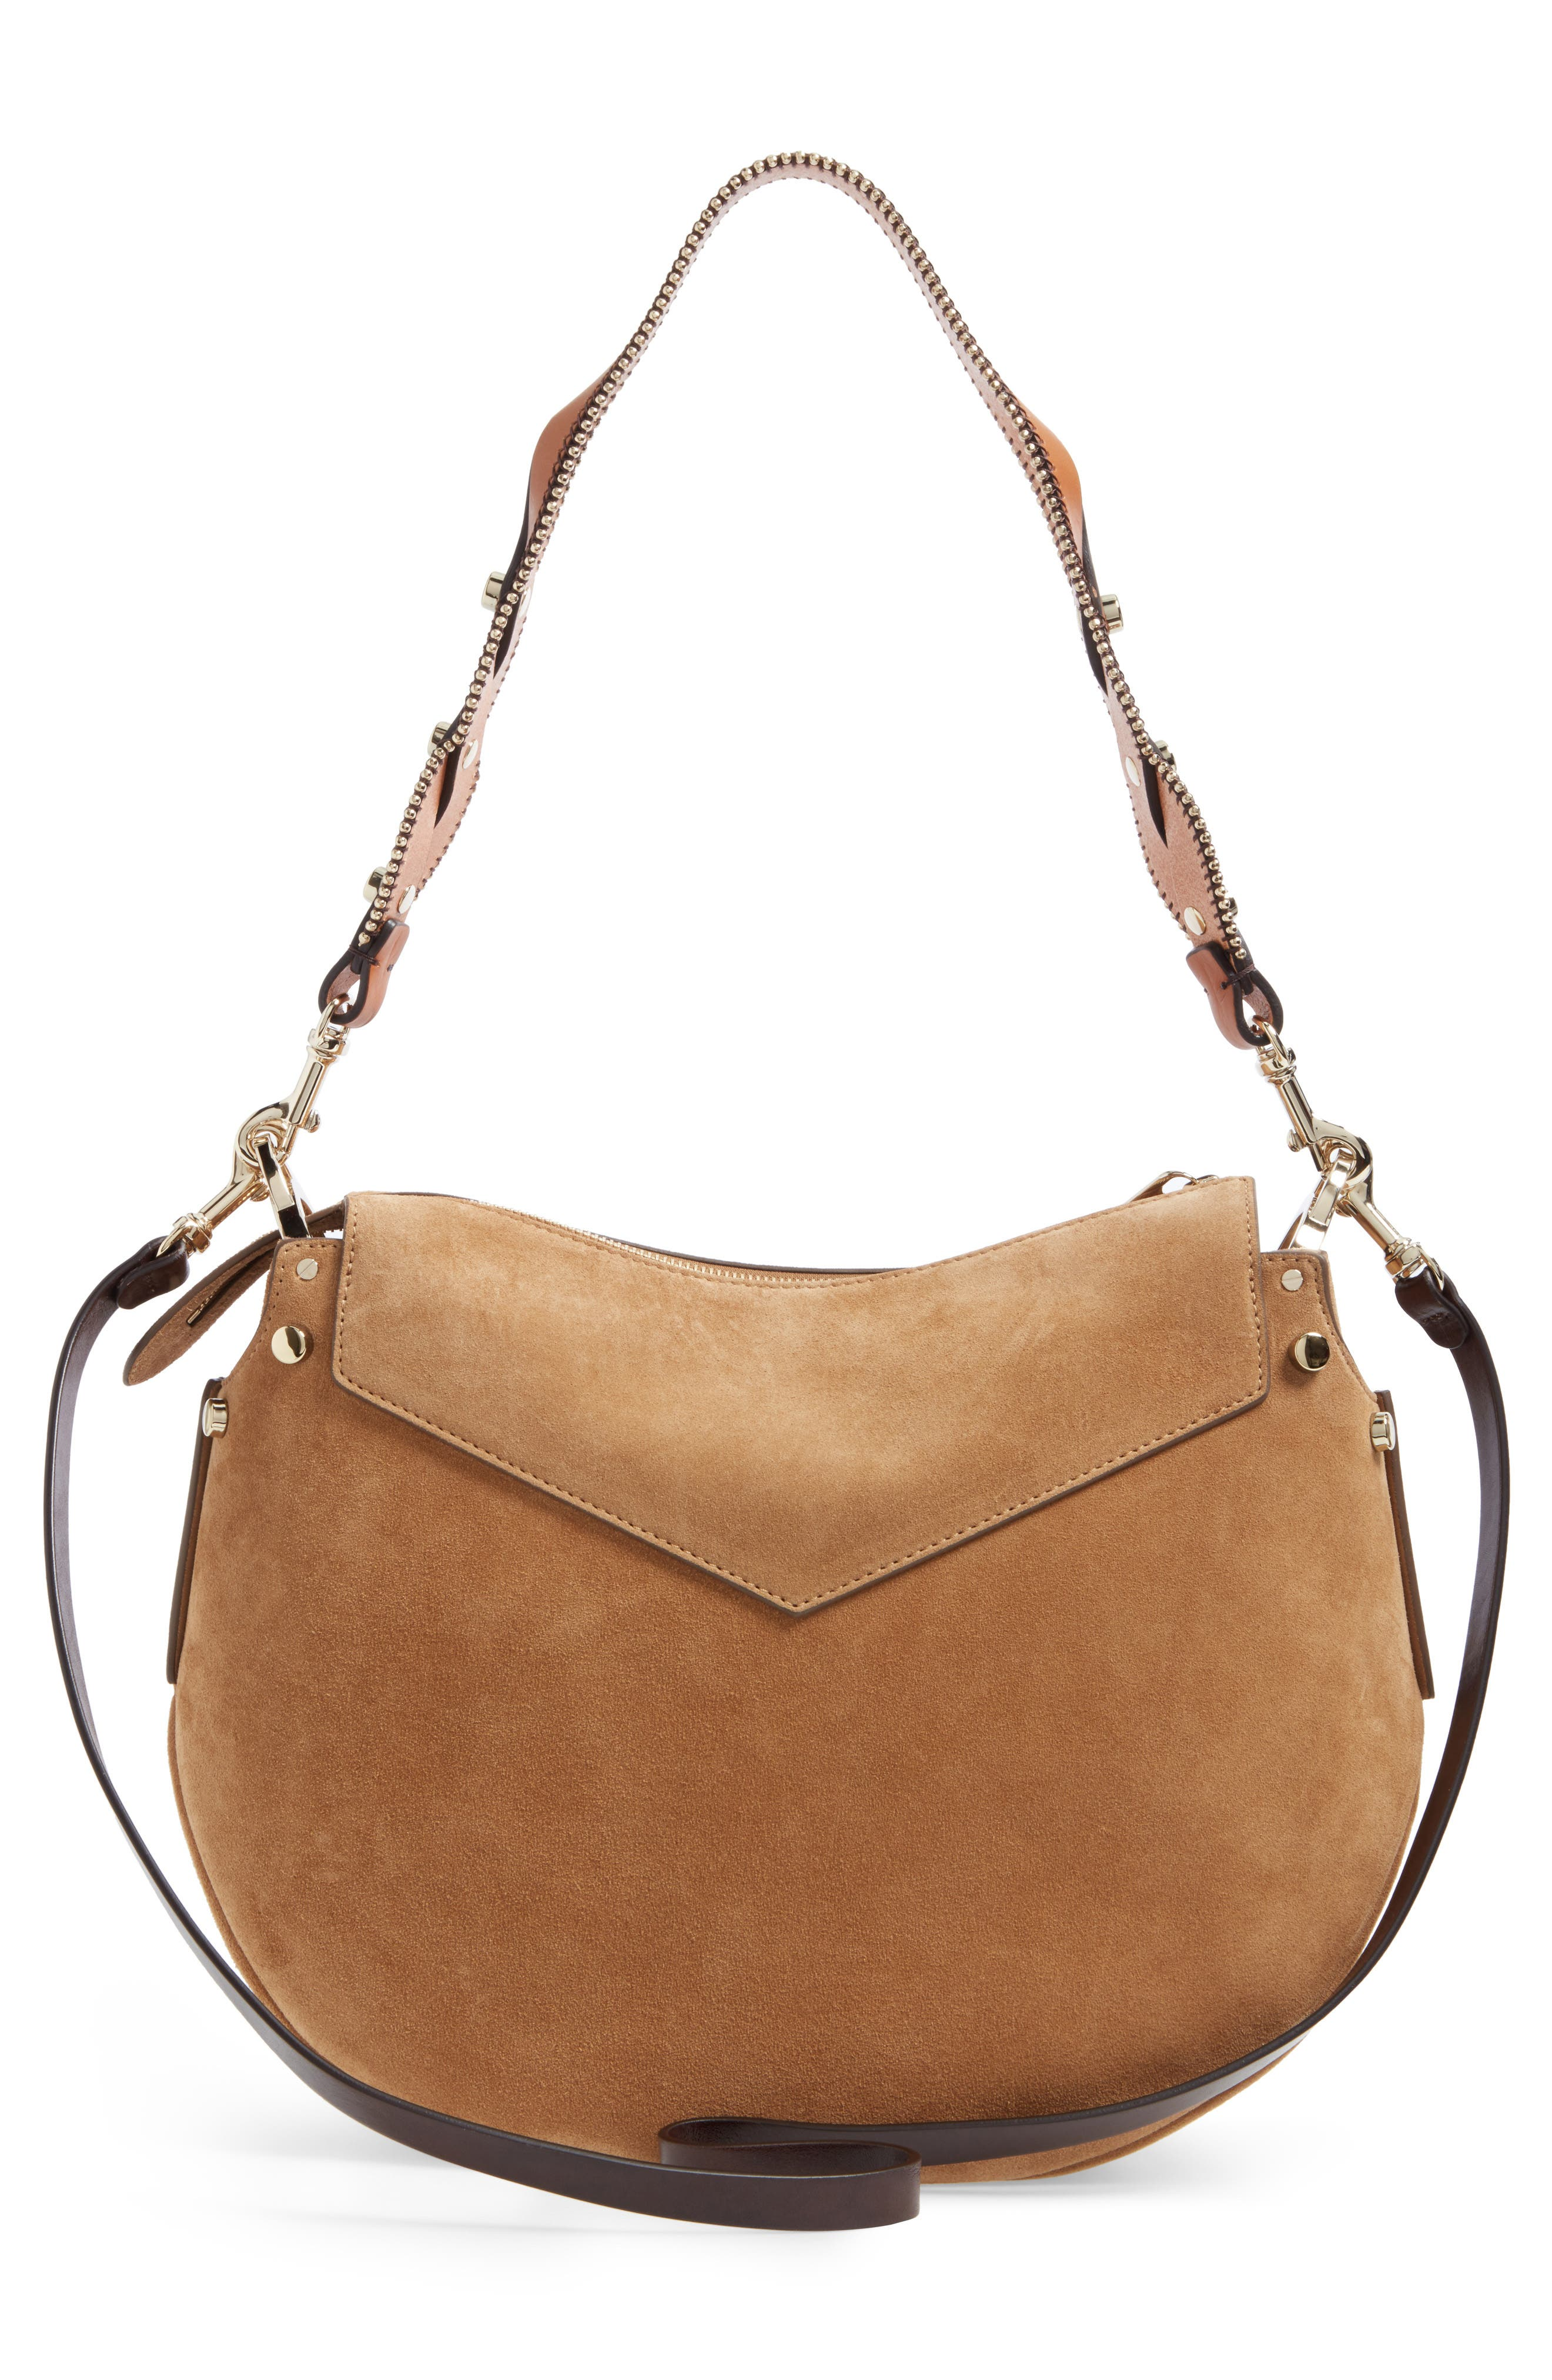 Alternate Image 3  - Jimmy Choo Artie Suede Hobo Bag